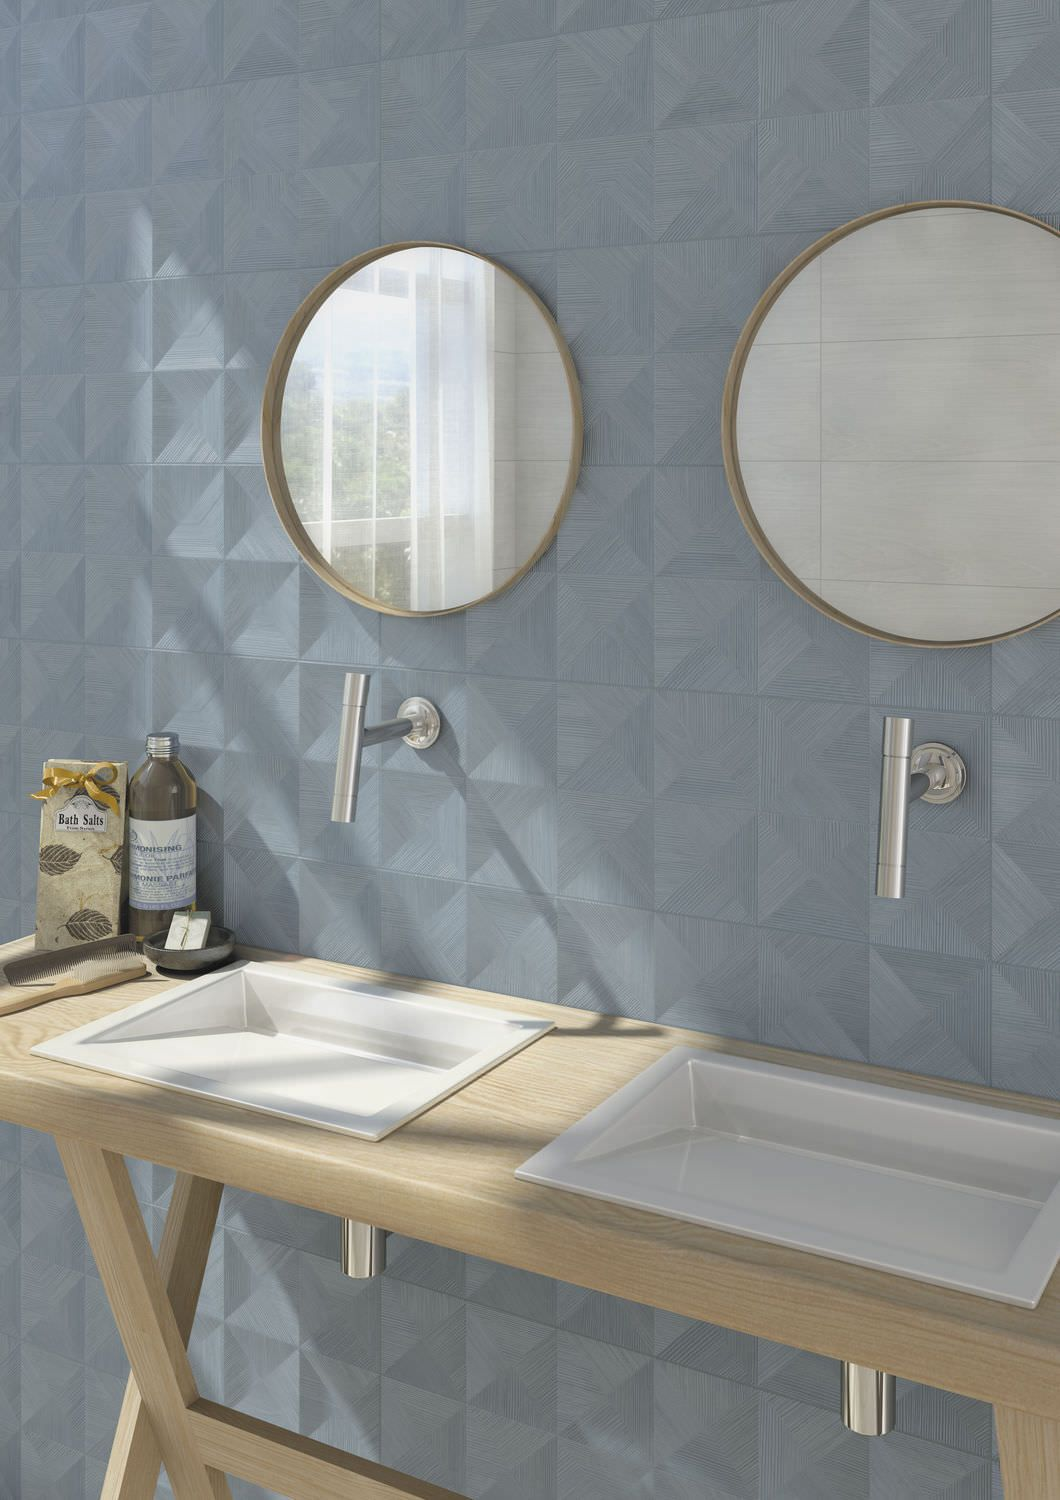 Indoor tile / wall / ceramic / high-gloss - INUIT - Vives Azulejos y ...